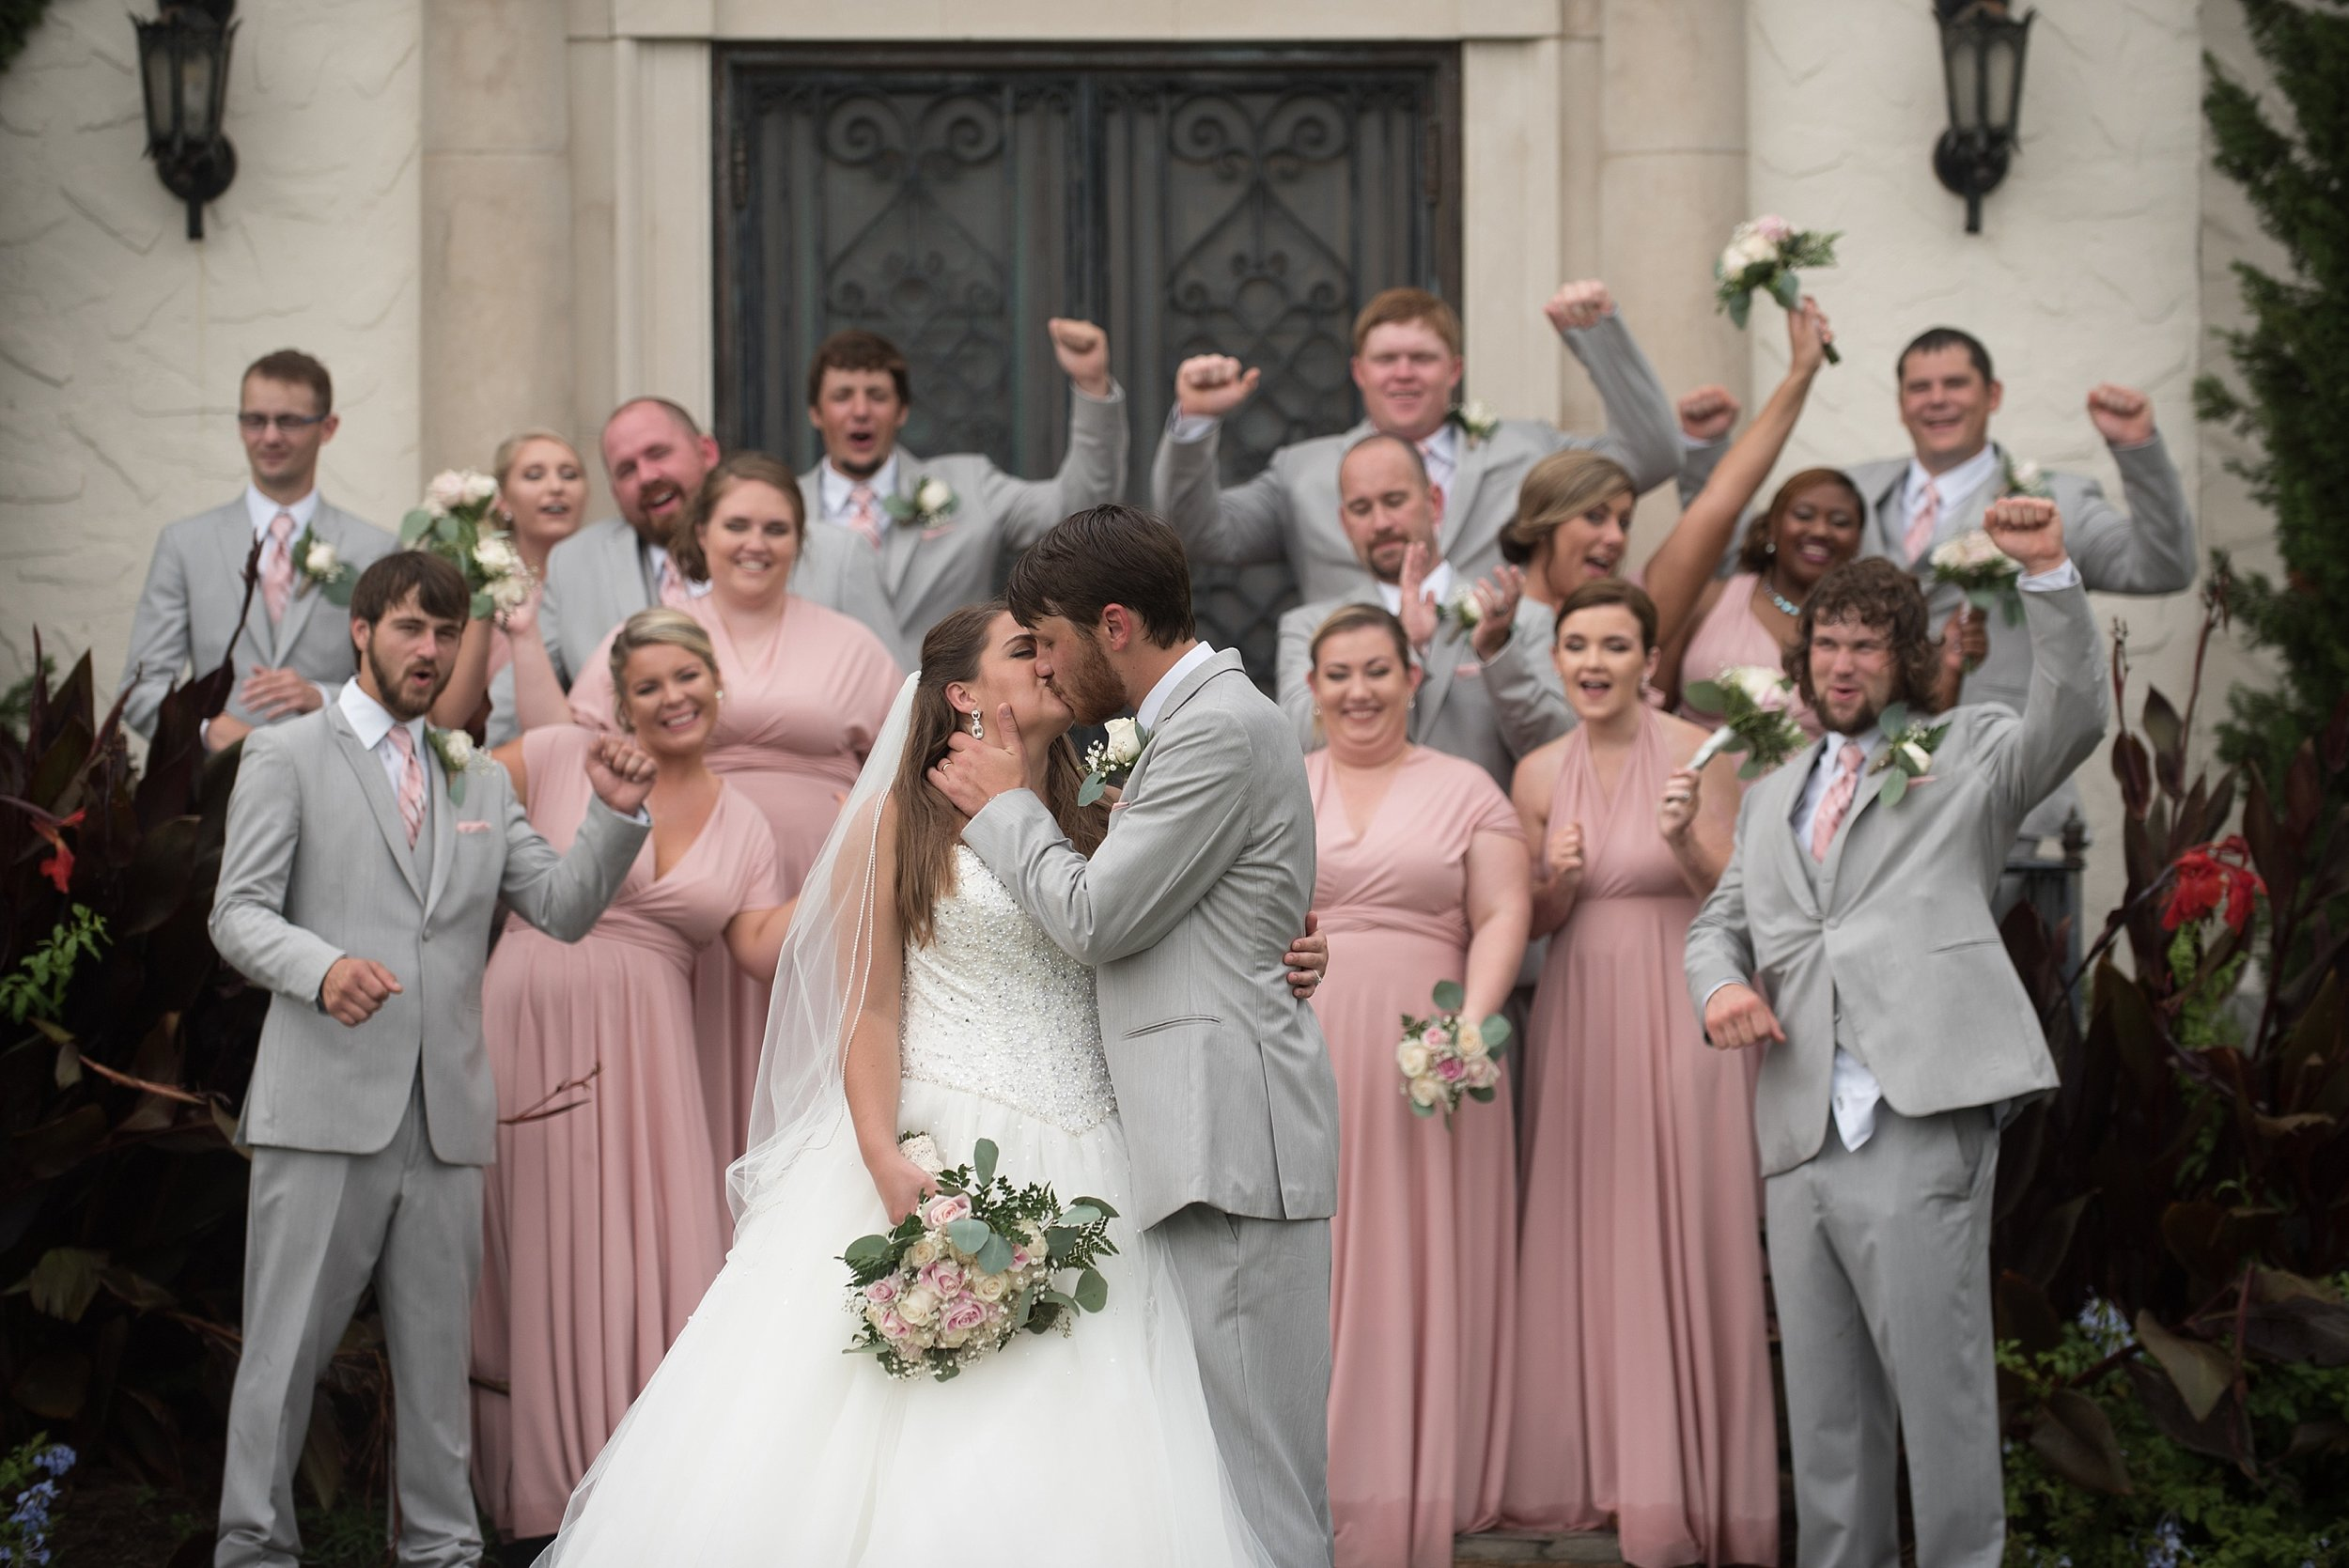 Wedding party cheers behind bride and groom on the steps of Springdale in Andalusia, Alabama